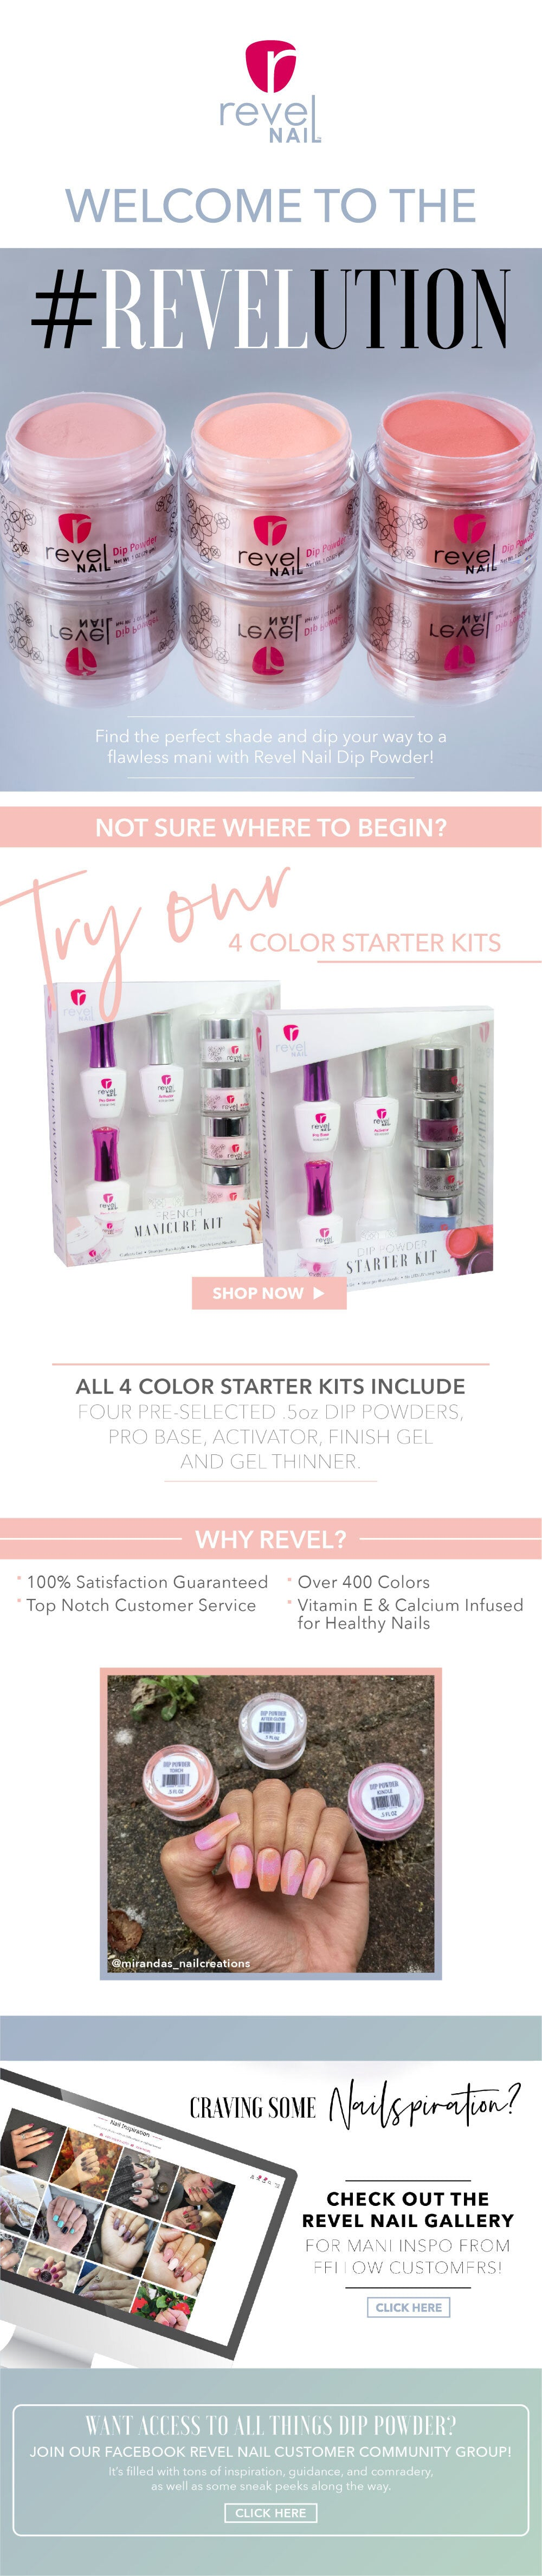 Starter Kit Landing Page | Revel Nail Dip Powder